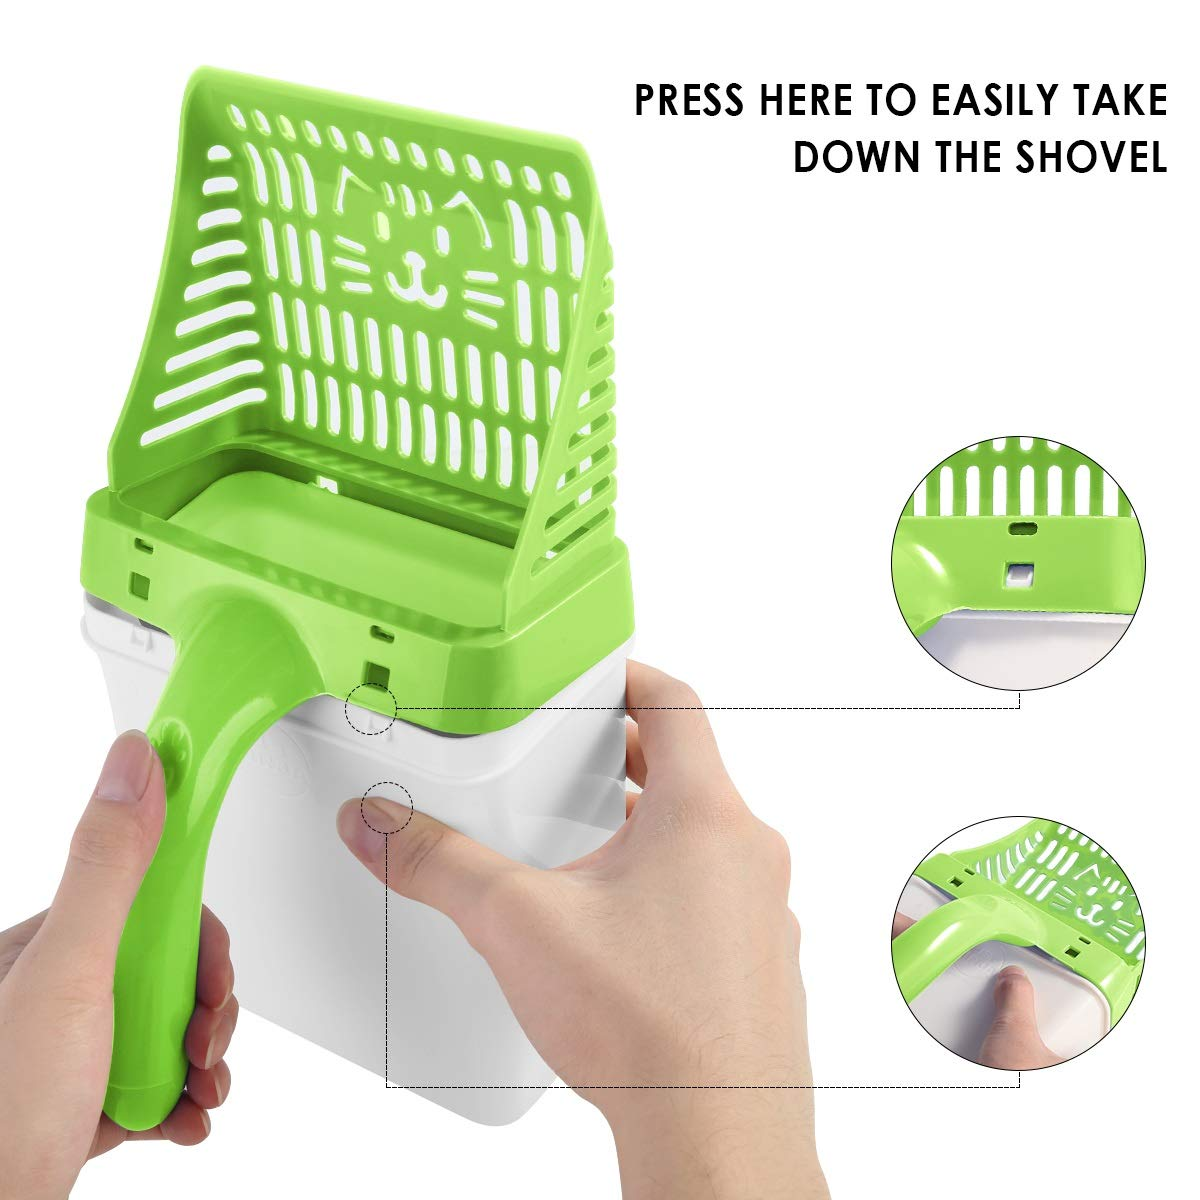 Sand Cleaning For Cat Litter 2 color option Useful Pet Cleaning Tool with Garbage Bag Color : Green Eurobuy Cat Litter Shovel /& Litter Trash Can 2-In-1